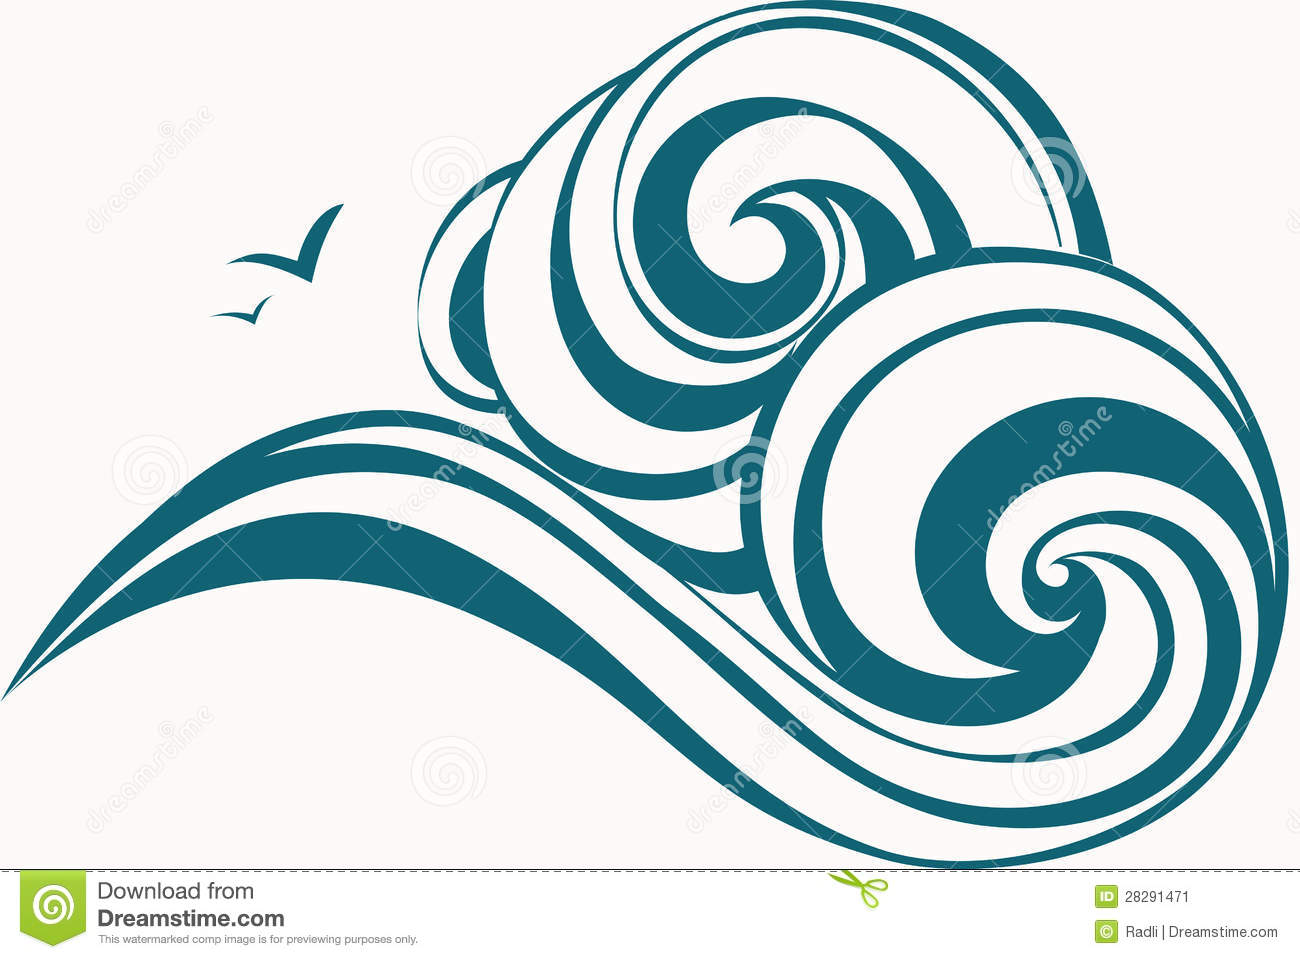 Abstract decorative waves. Vector illustration.